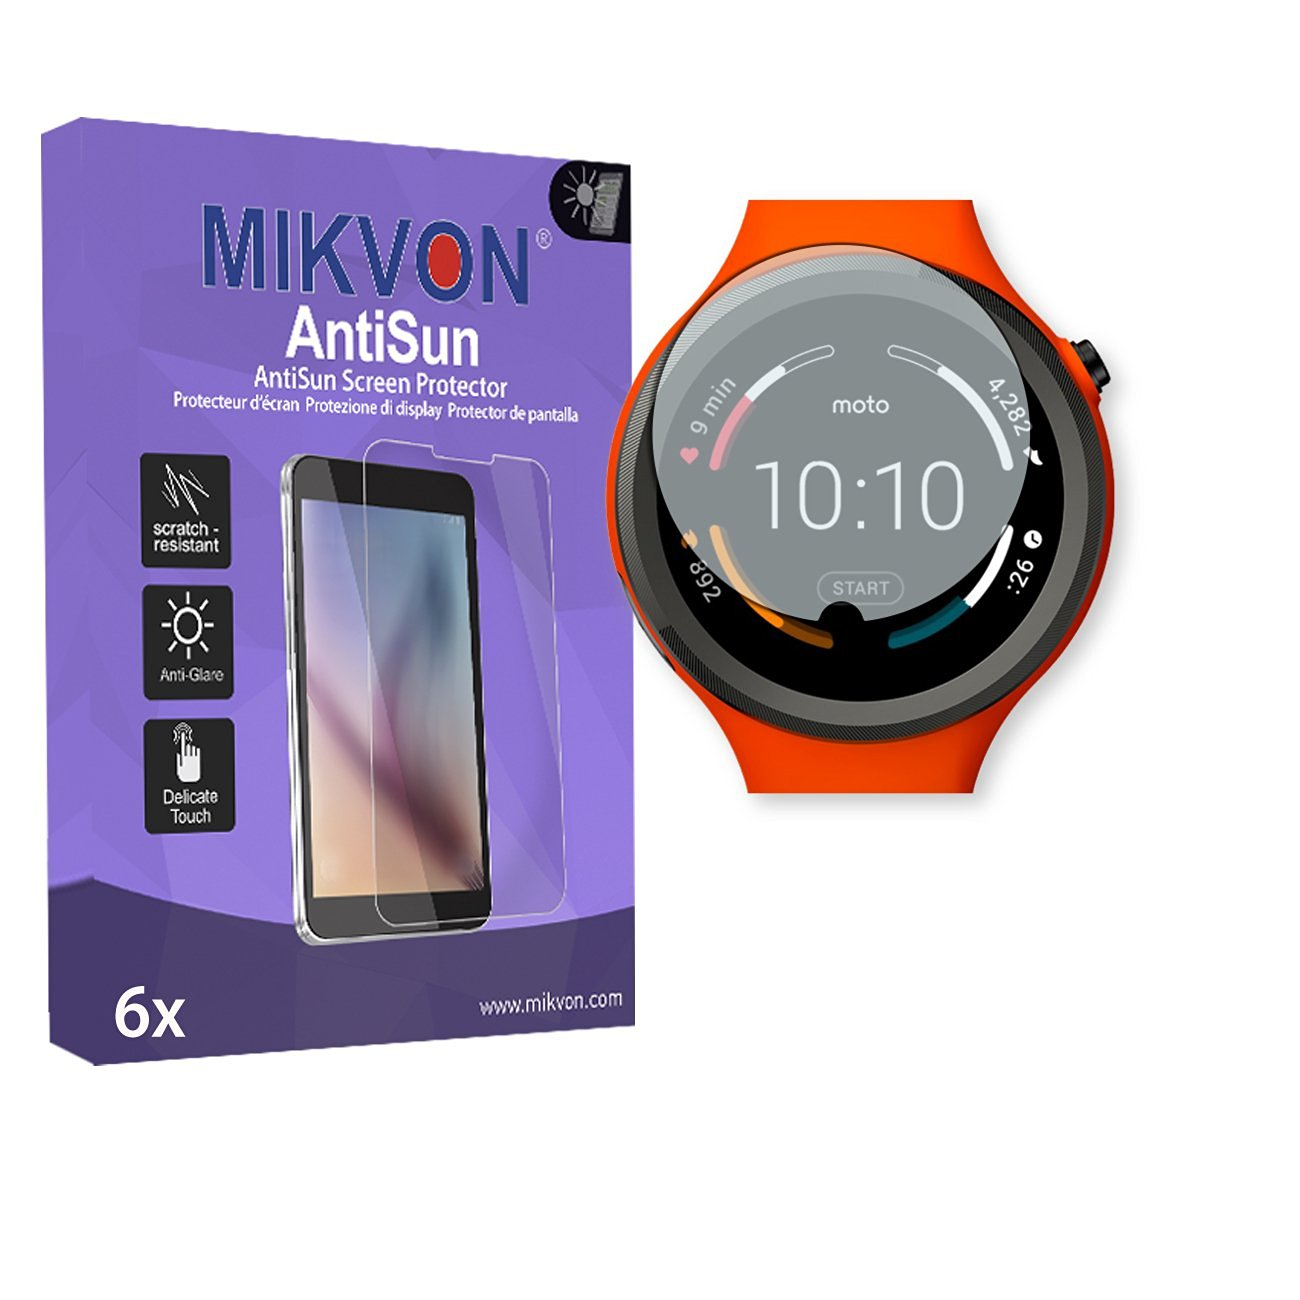 6x Mikvon AntiSun Screen Protector for Motorola Moto 360 Sport Smartwatch - Retail Package with accessories (intentionally smaller than the display due to its curved surface)